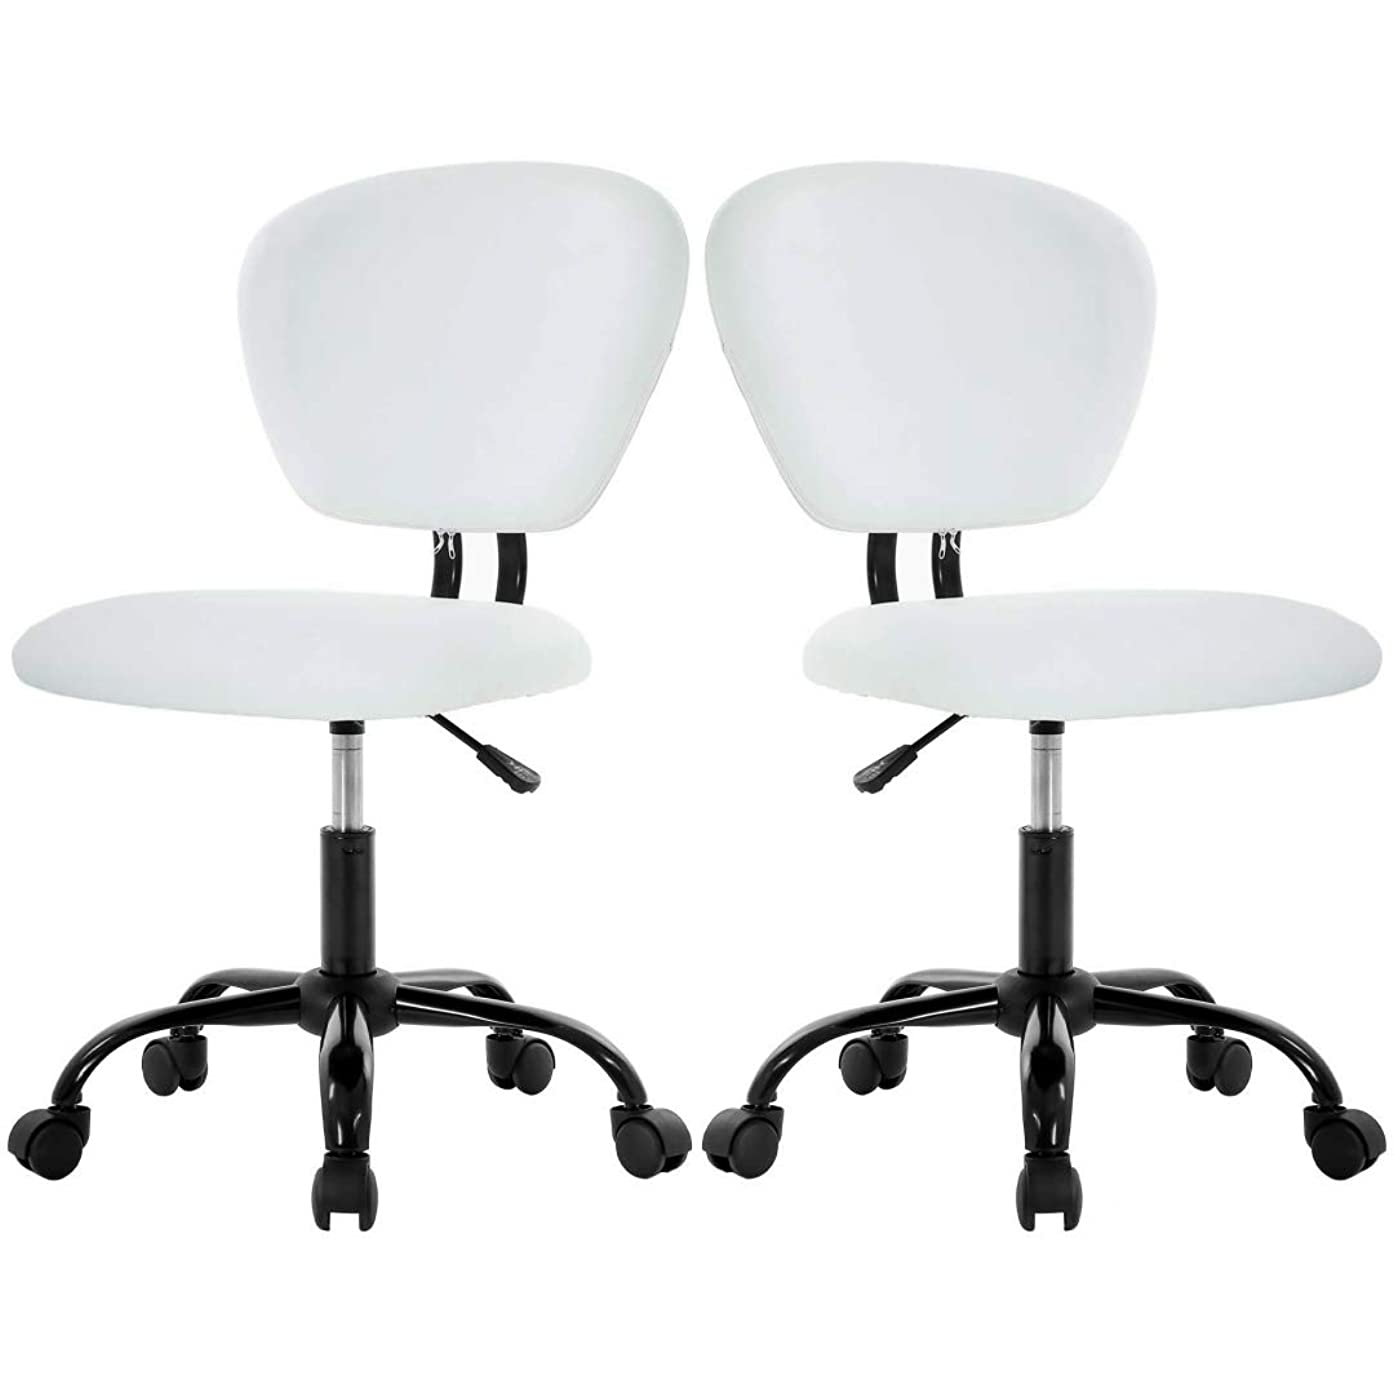 Set of 2 Modern Style Desk Task Chair Durable PU Leather Upholstery Seats Mid-Back Armless Design Height Adjustable 360-Degree Swivel Solid Metal Base Home Office Dining Room Furniture - White #2272